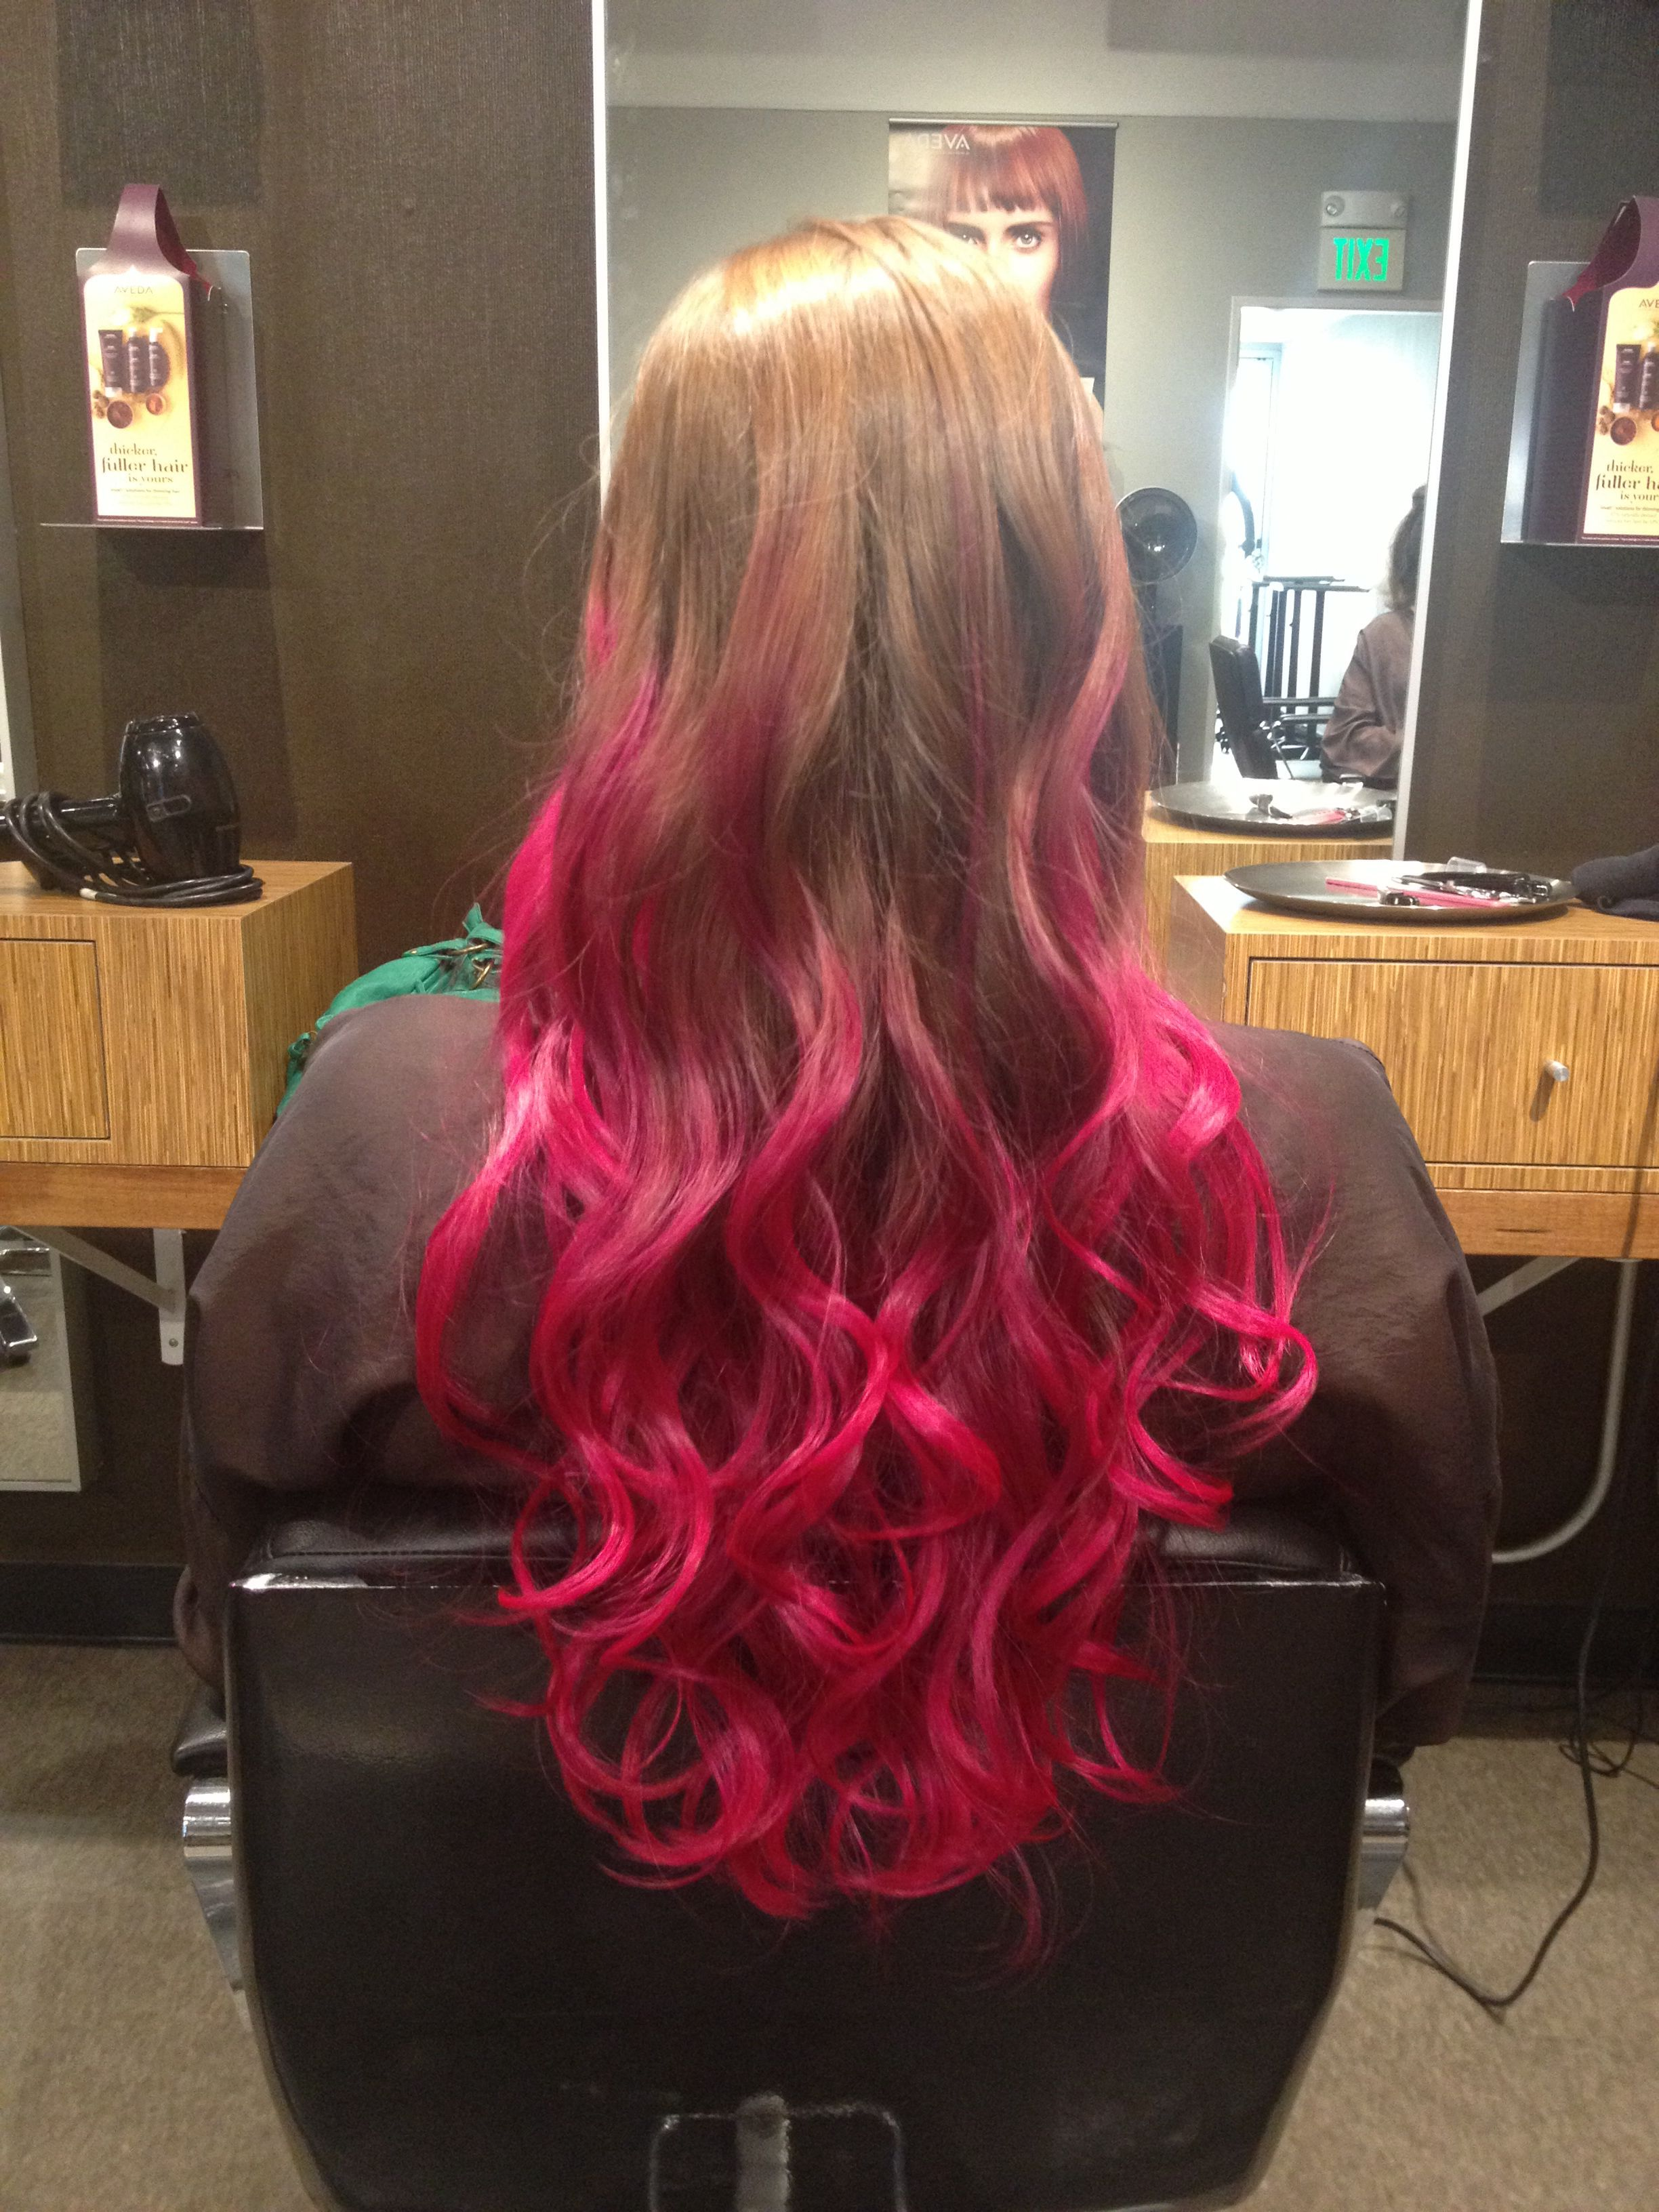 Special Effects Semi Permanent Hair Dye Atomic Pink Hands Down